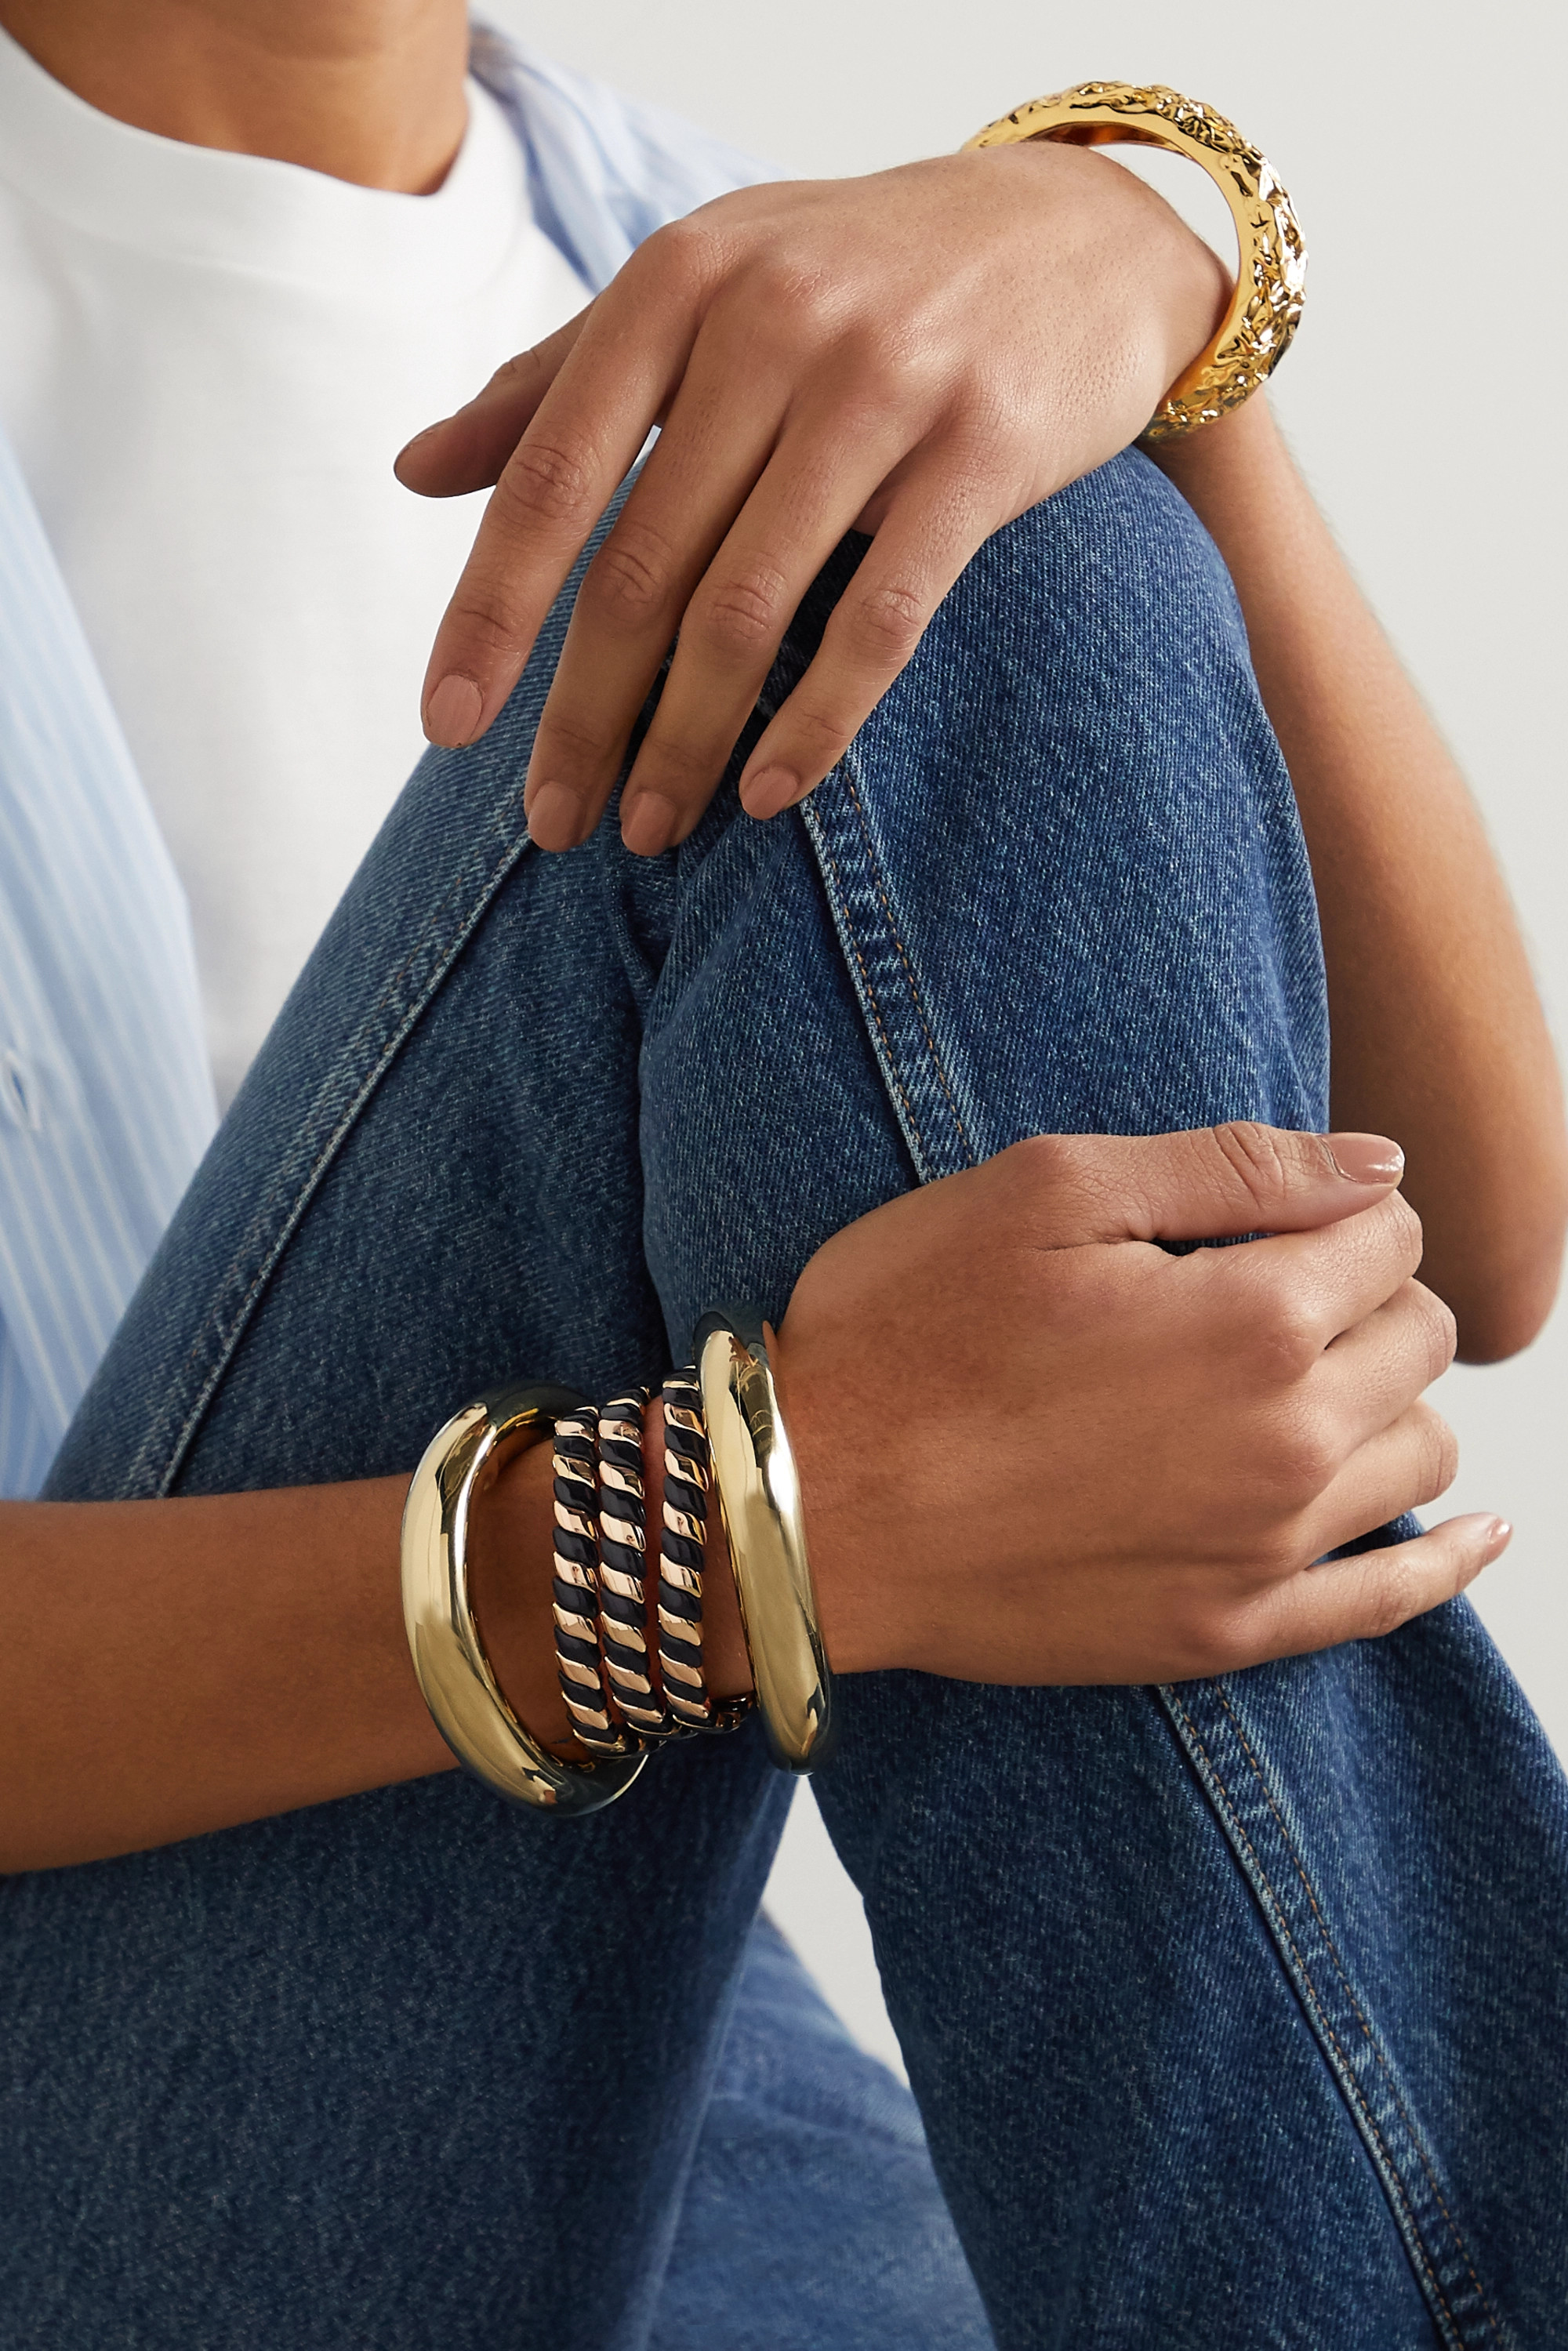 Roxanne Assoulin Show Me The Ropes set of three gold-tone and enamel bracelets